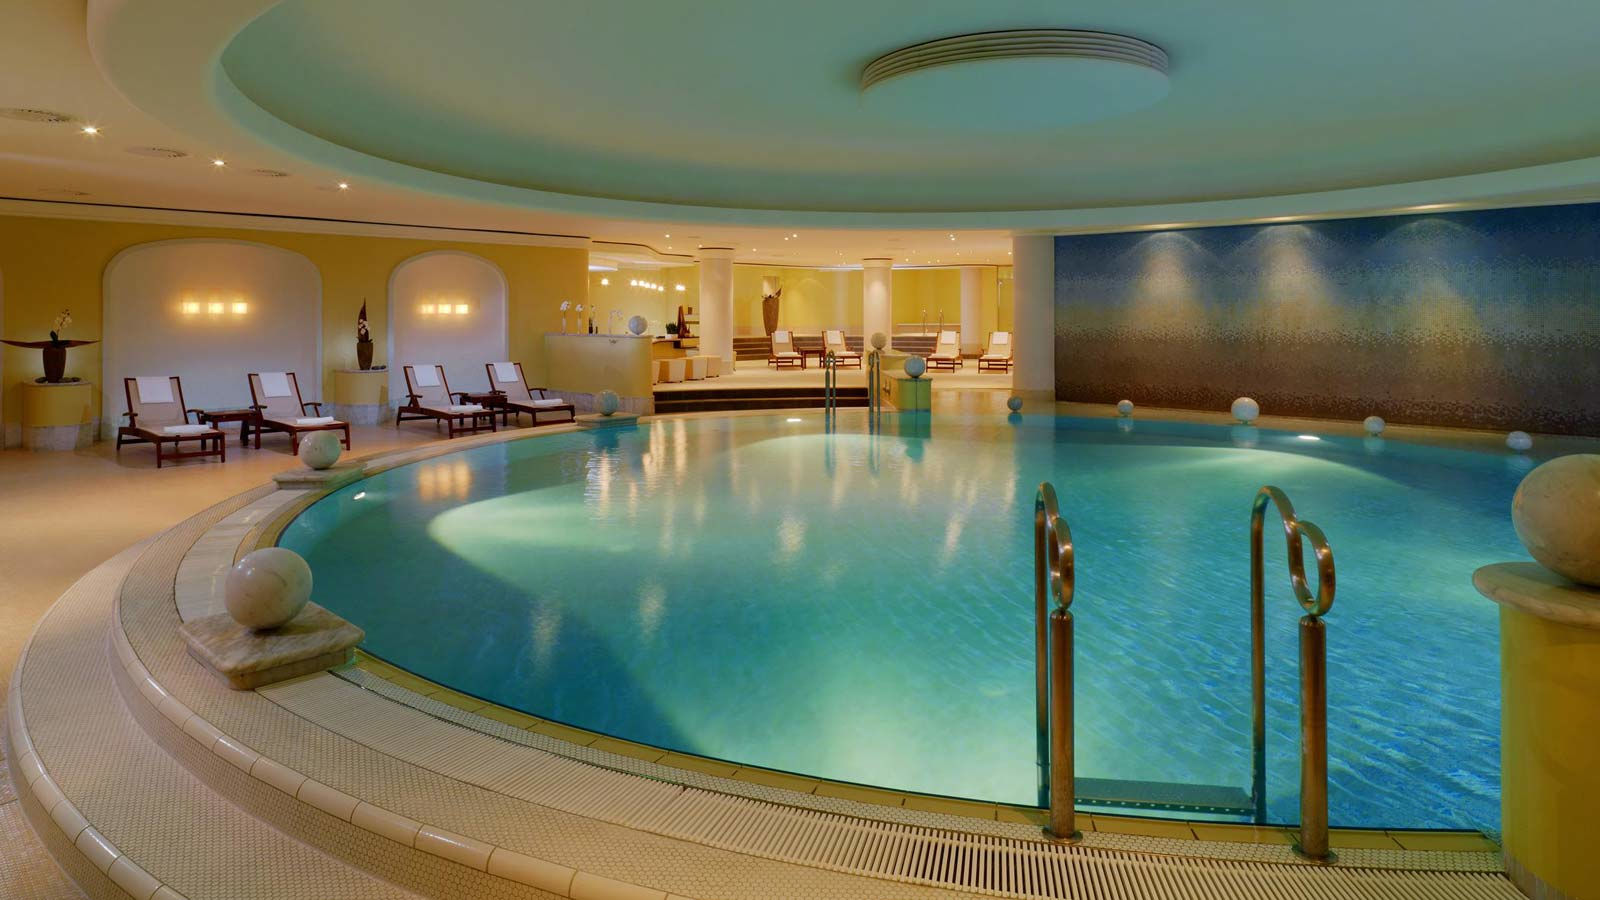 Indoorpool im The Westin Grand Wellnesshotel Berlin